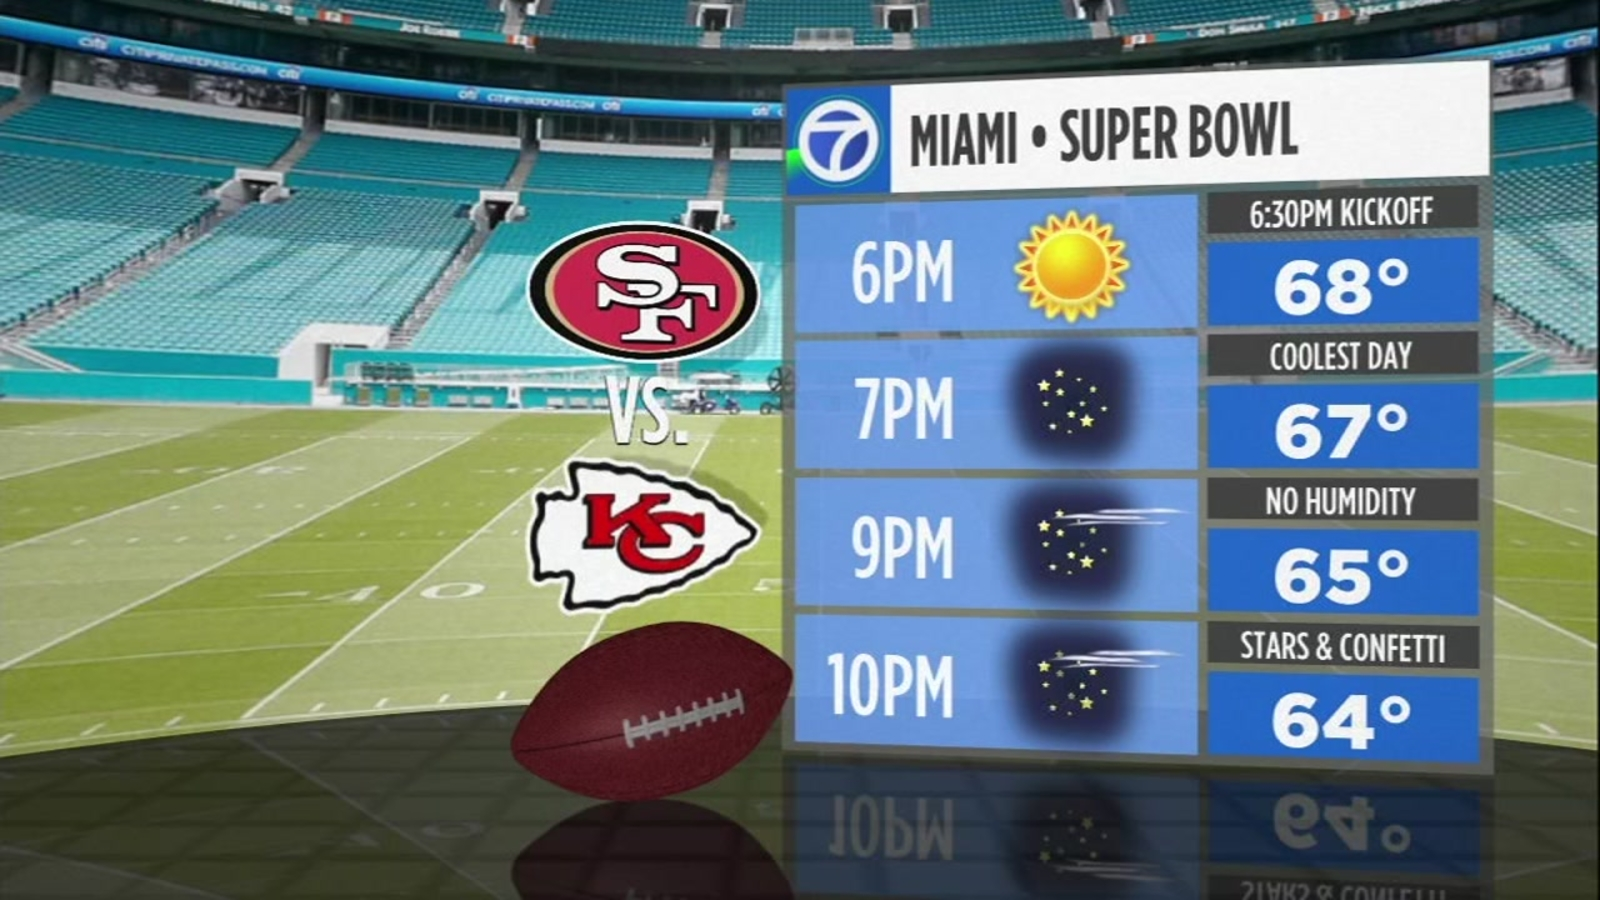 Stormy Weekend In Miami To Kick Off Super Bowl